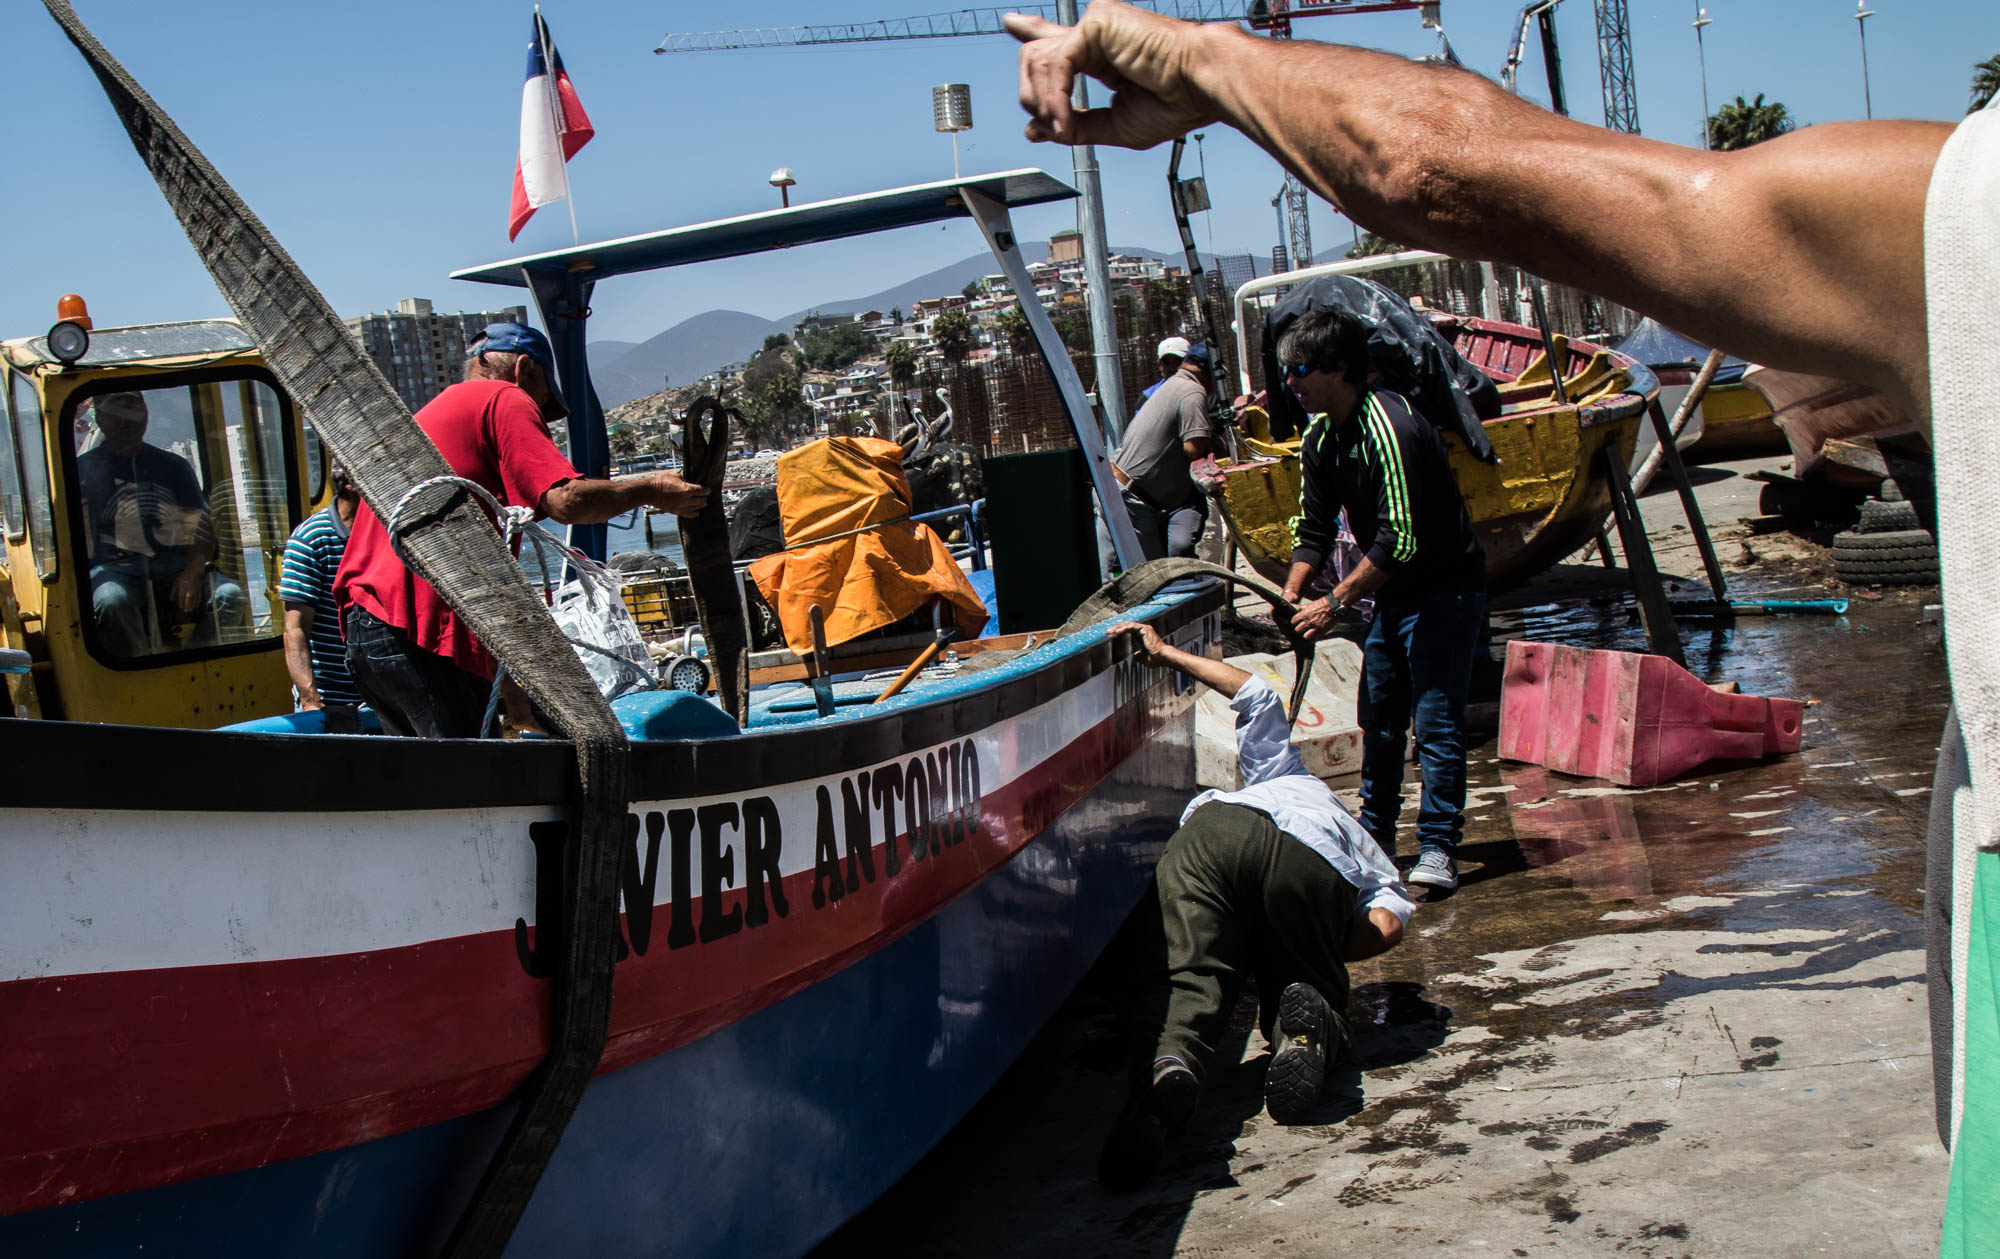 "Local fishermen gather at the Coquimbo port to help place a rebuilt boat back into the water. The ship was damaged in the tsunami of 2015 and took one year to repair. Hundreds more boats were damaged in the tsunami which has also lead to the shrinking of the fishing industry since the fishermen don't have a way to go out in the water and fish like they used to be able to. A local fishermen and restaurant owner in the market nearby, Harry Gloria relives the night of the tsunami. ""Last September, around 8 o'clock, there was an earthquake. After the earthquake, about 25 minutes later, there came a tsunami. It was about 4-5 waves but they were 5 meters large each…about 4-5 waves. By midnight, it had destroyed everything around here in Coquimbo, the whole coast was destroyed, the inlet of Coquimbo was all destroyed."""